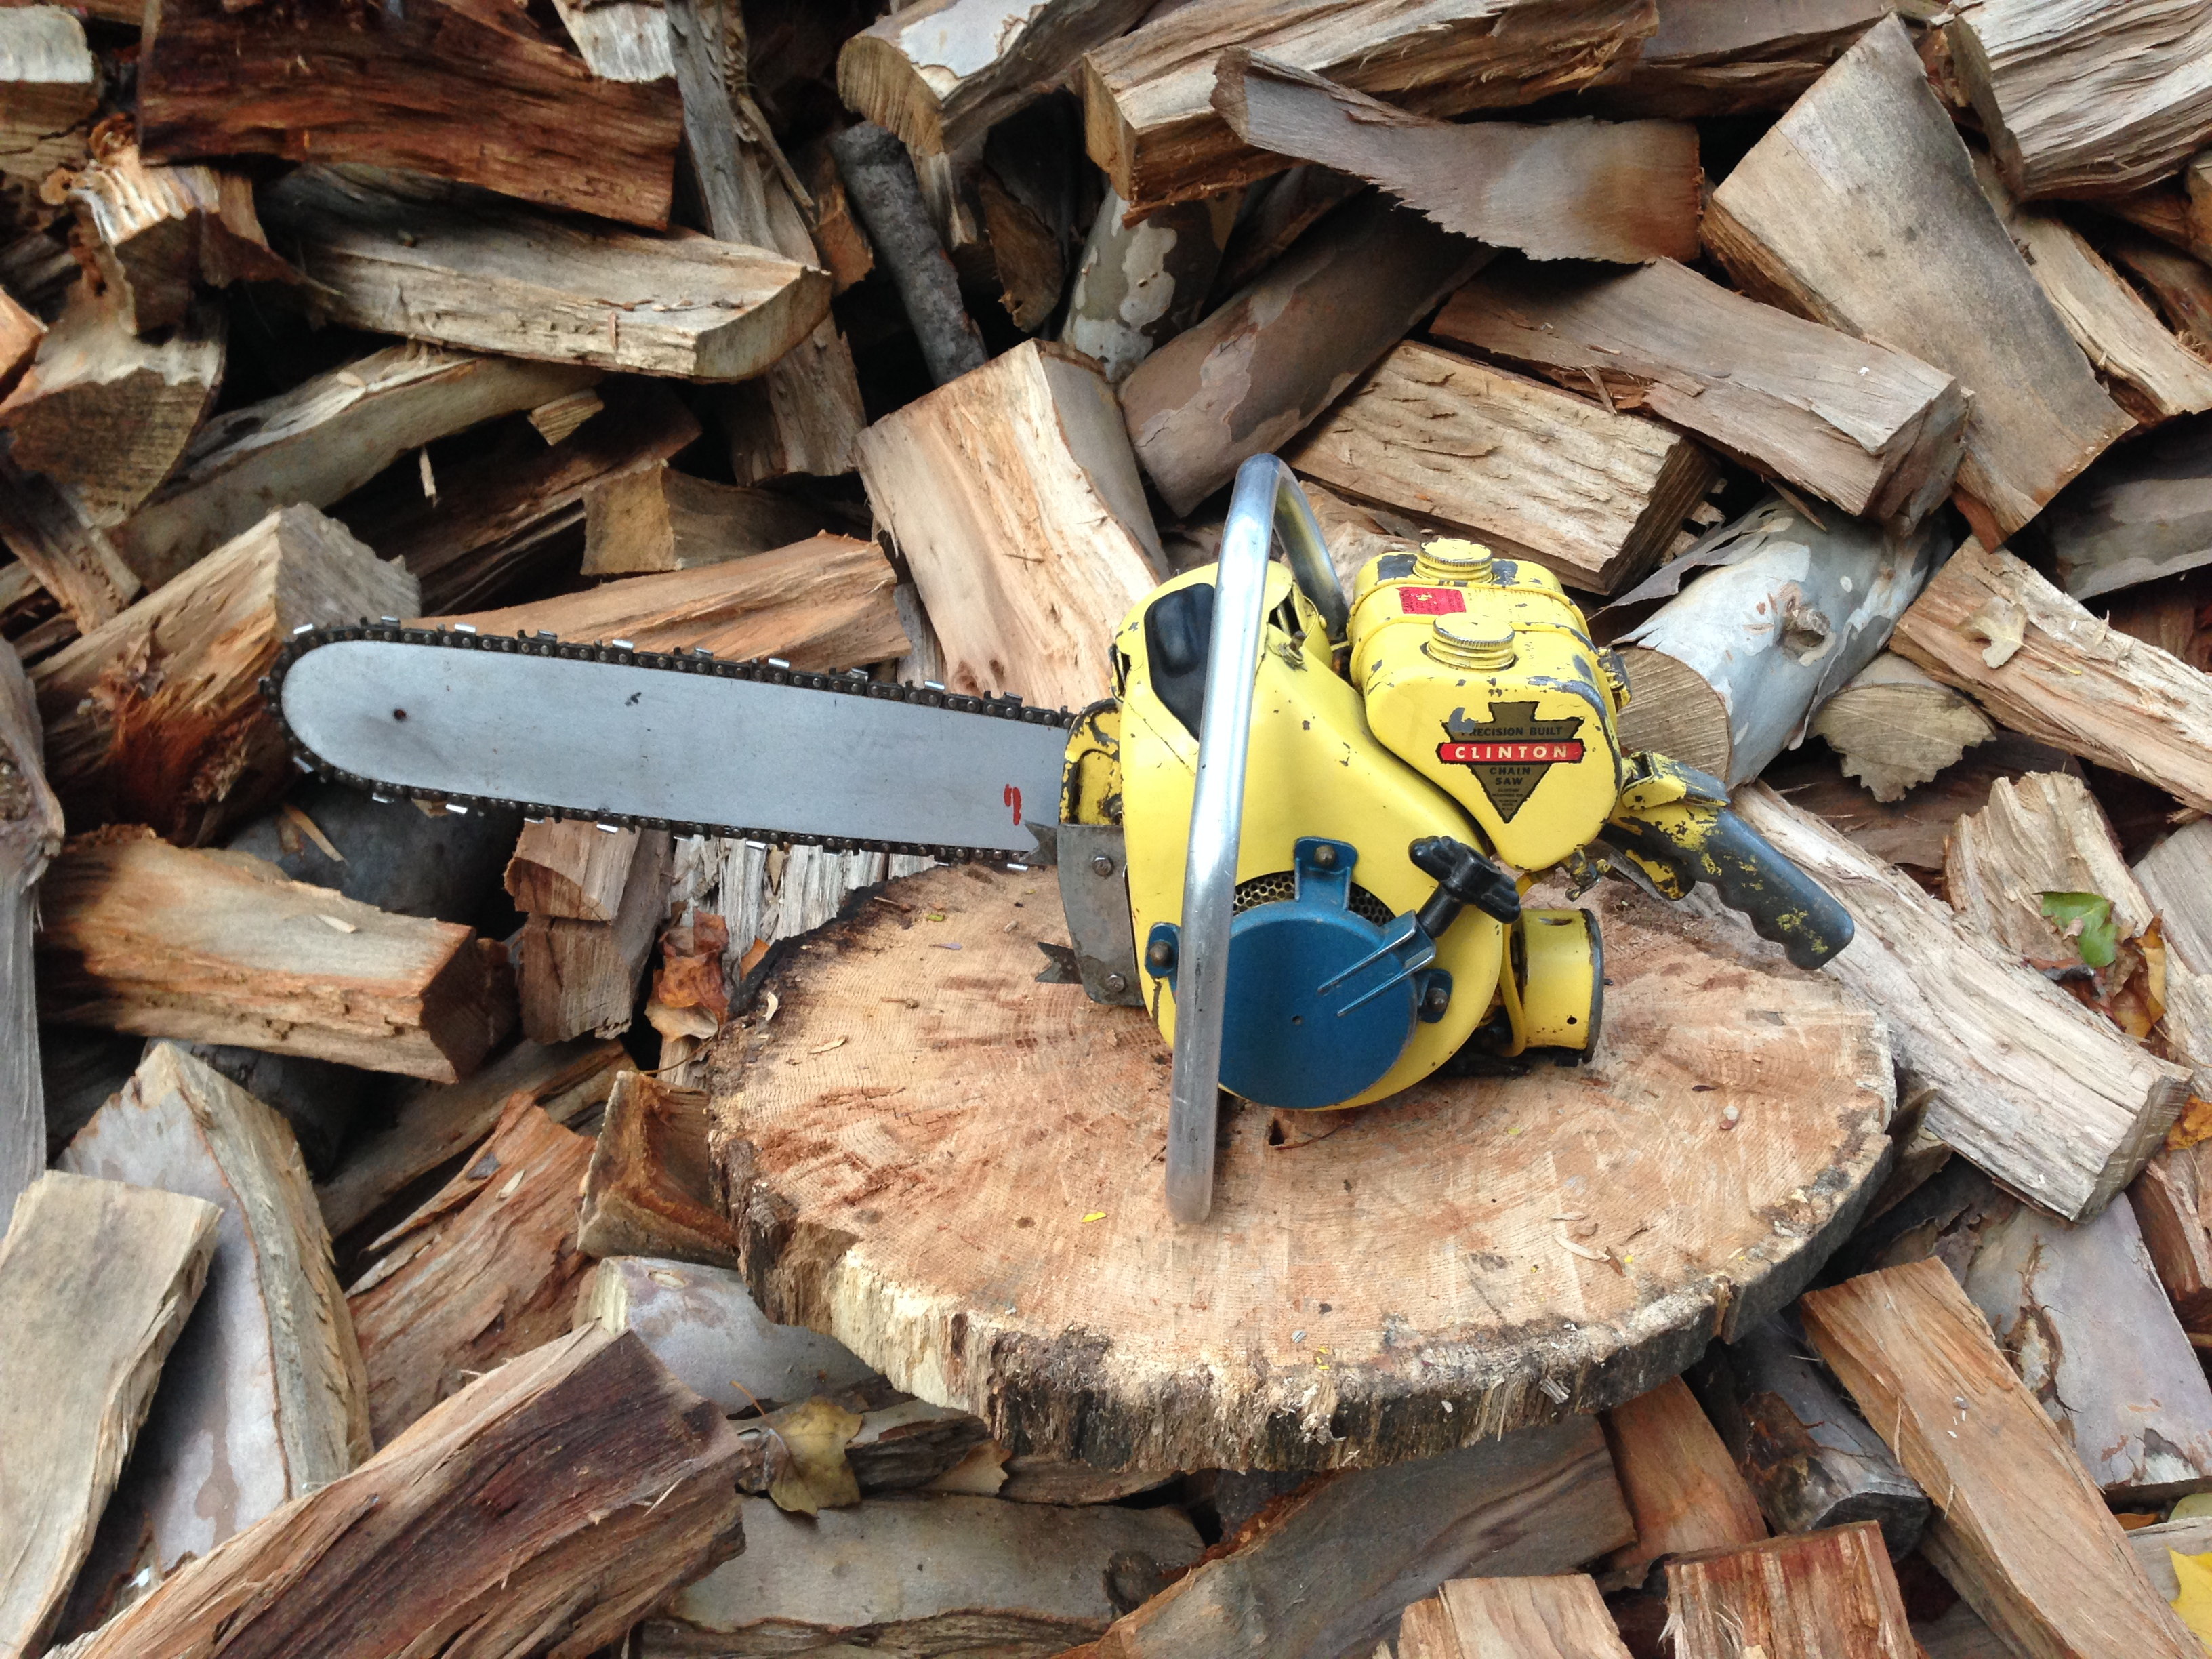 Clinton D4 vintage chainsaw #2.JPG